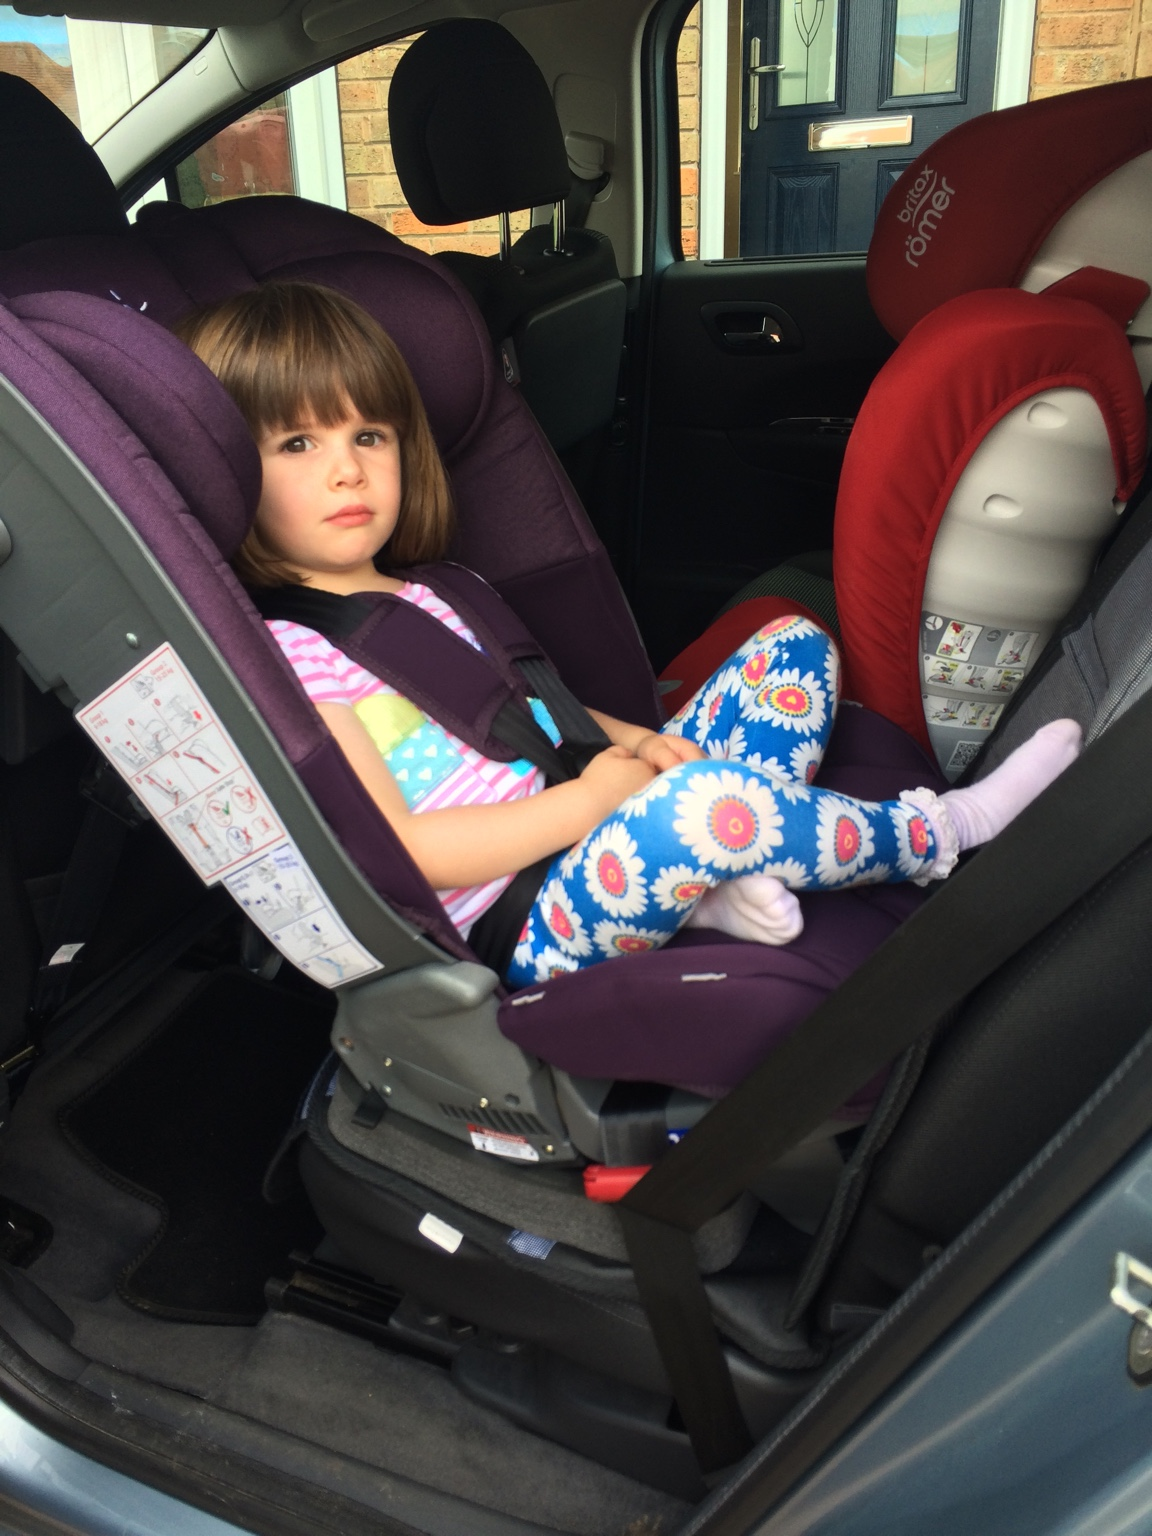 When to change car seat? - Netmums Chat